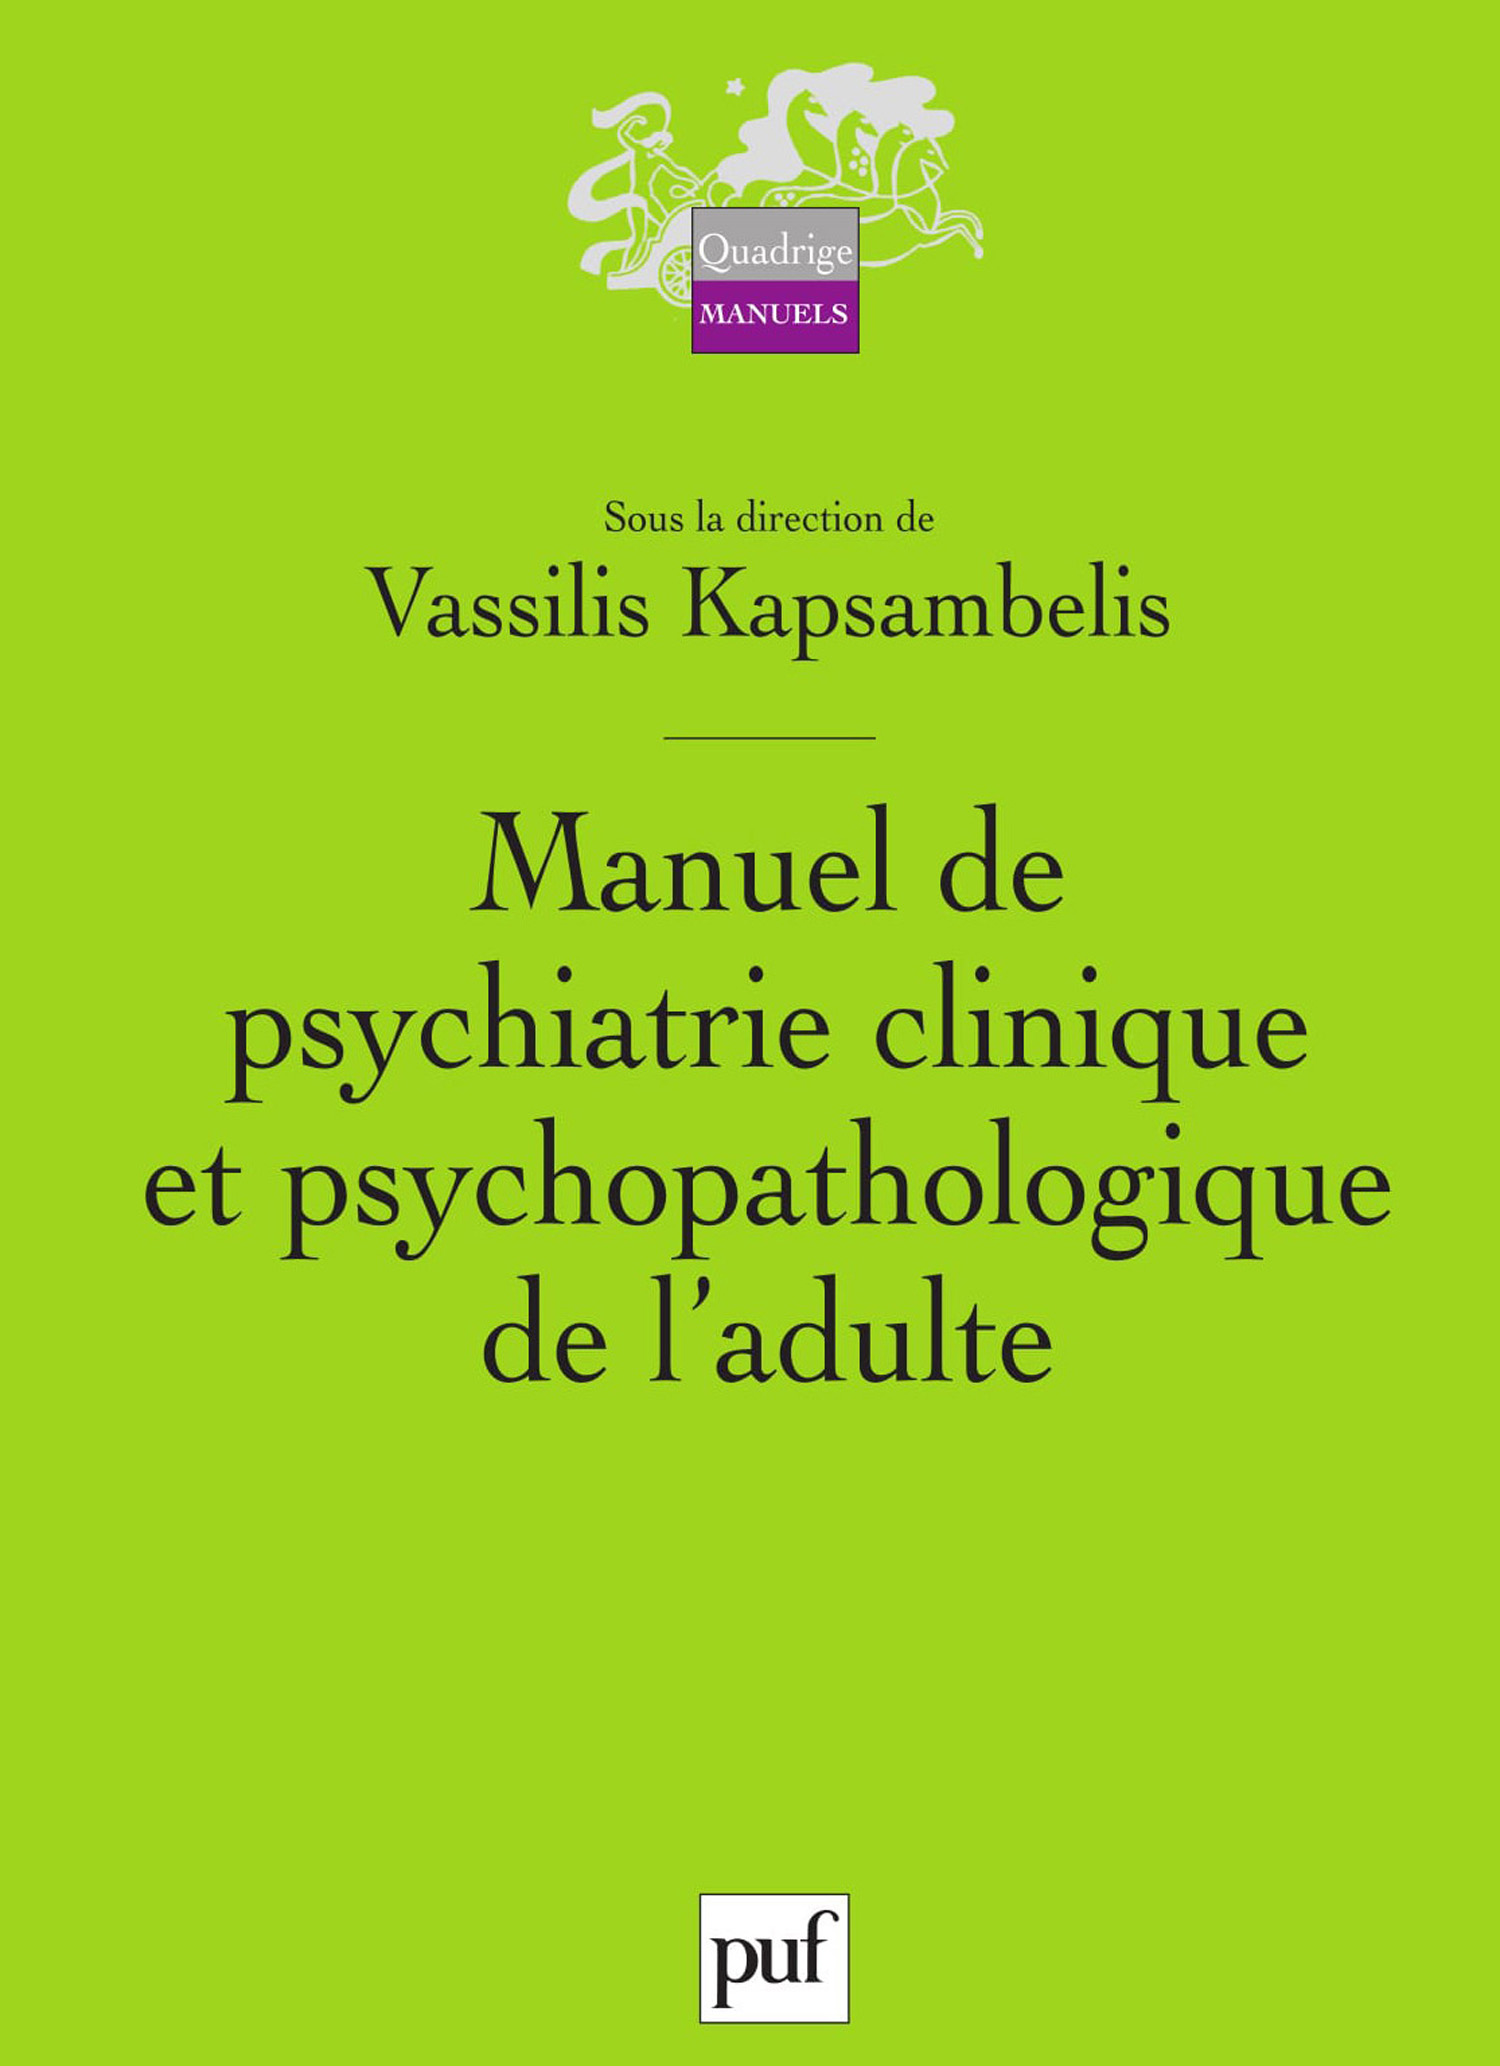 Manuel de psychiatrie clinique et psychopathologique de l'adulte De Vassilis Kapsambelis - Presses Universitaires de France